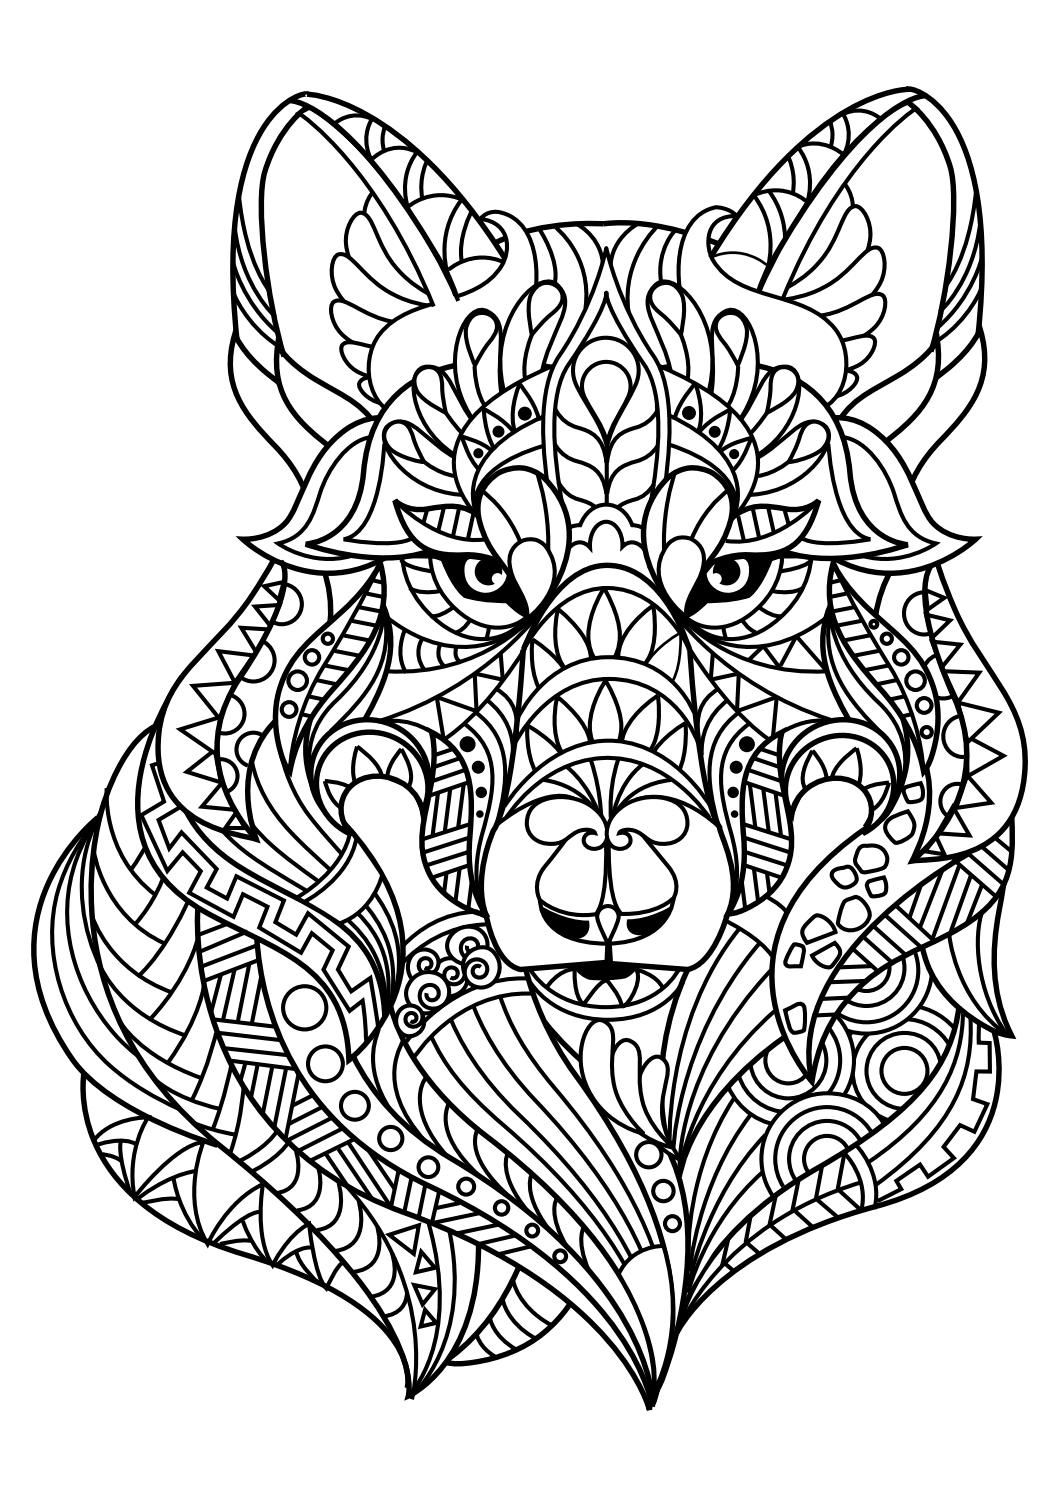 pdf coloring pages Animal coloring pages pdf | Coloring   Animals | Coloring pages  pdf coloring pages